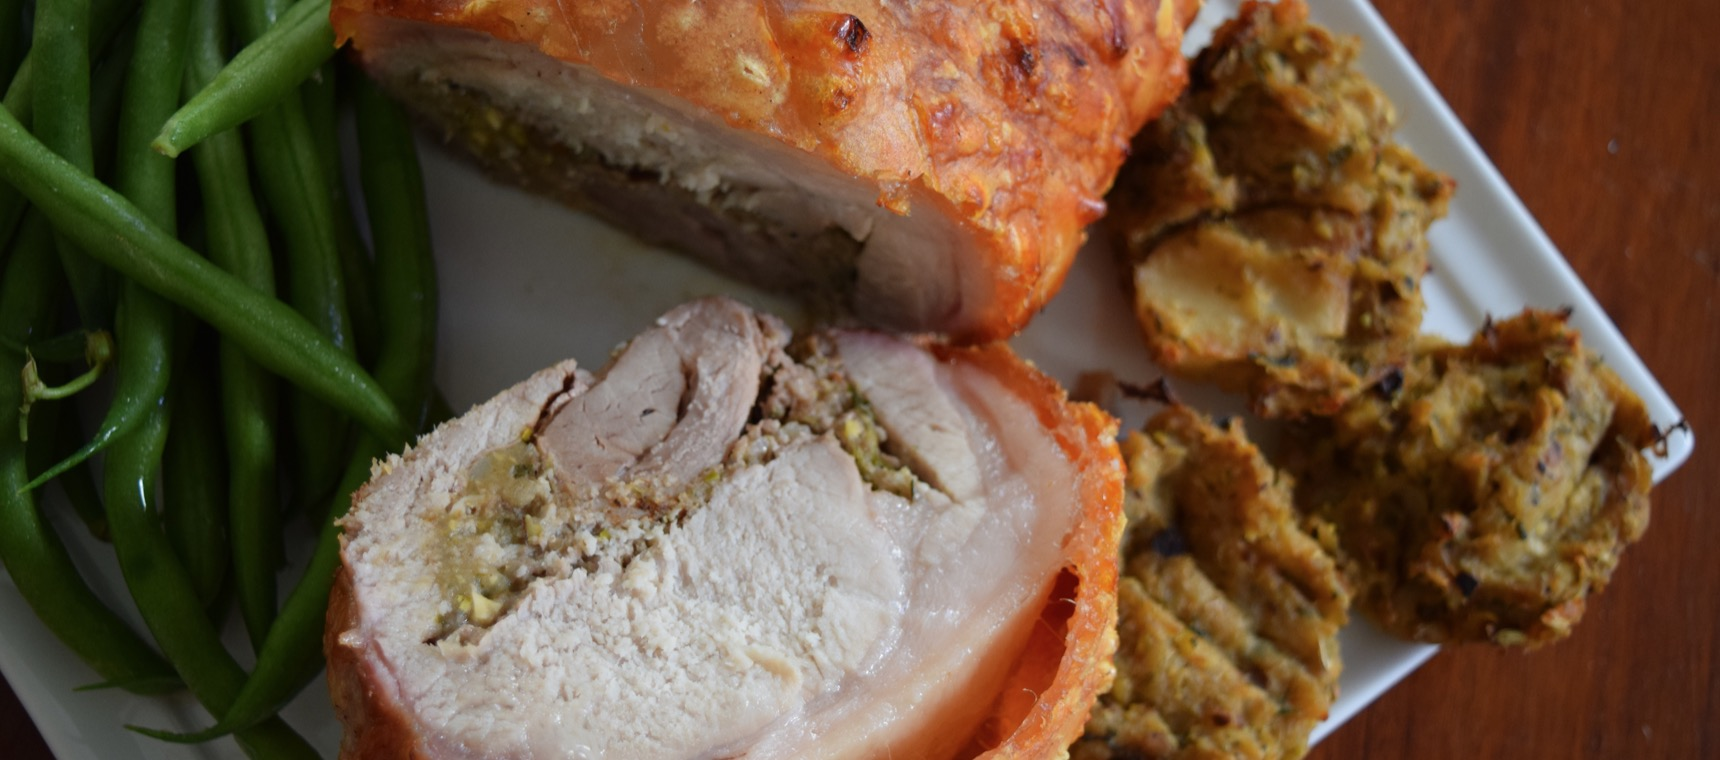 Rolled Roast Pork with Apple, Pear & Pistachio Grainfree Stuffing